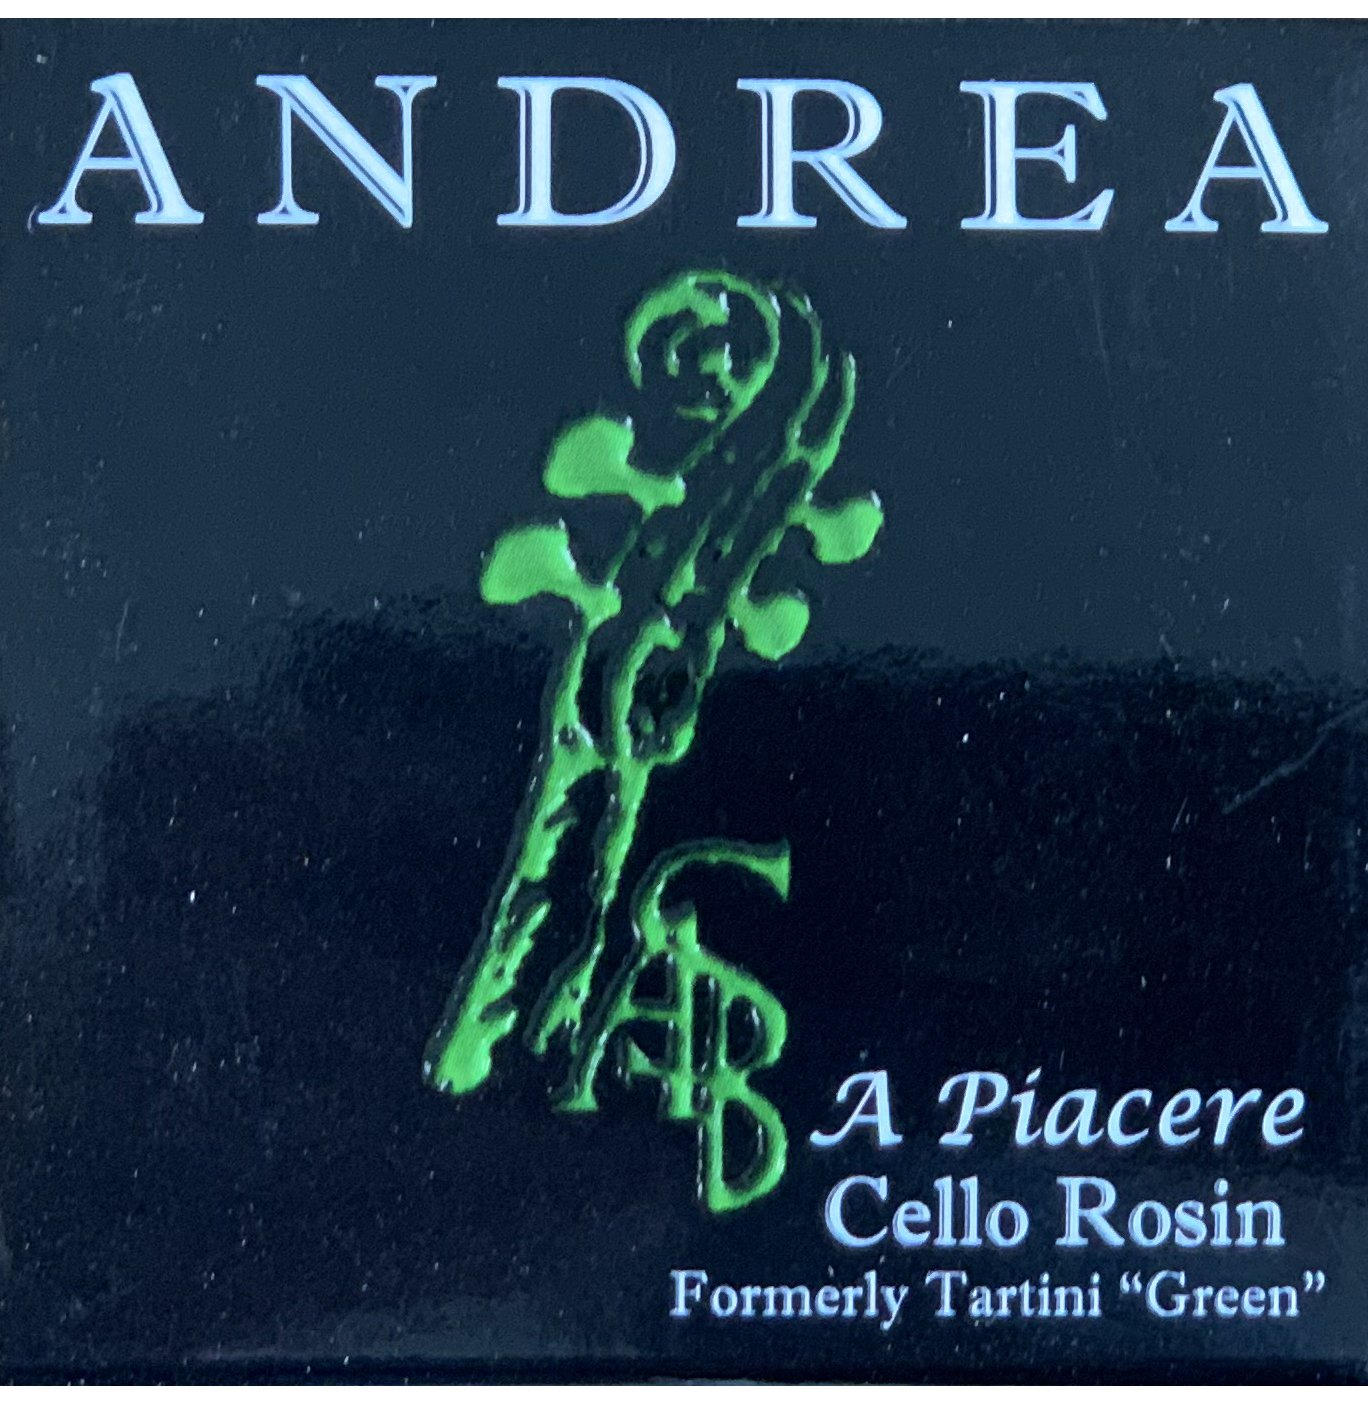 Andrea Rosin - Cello A Piacere